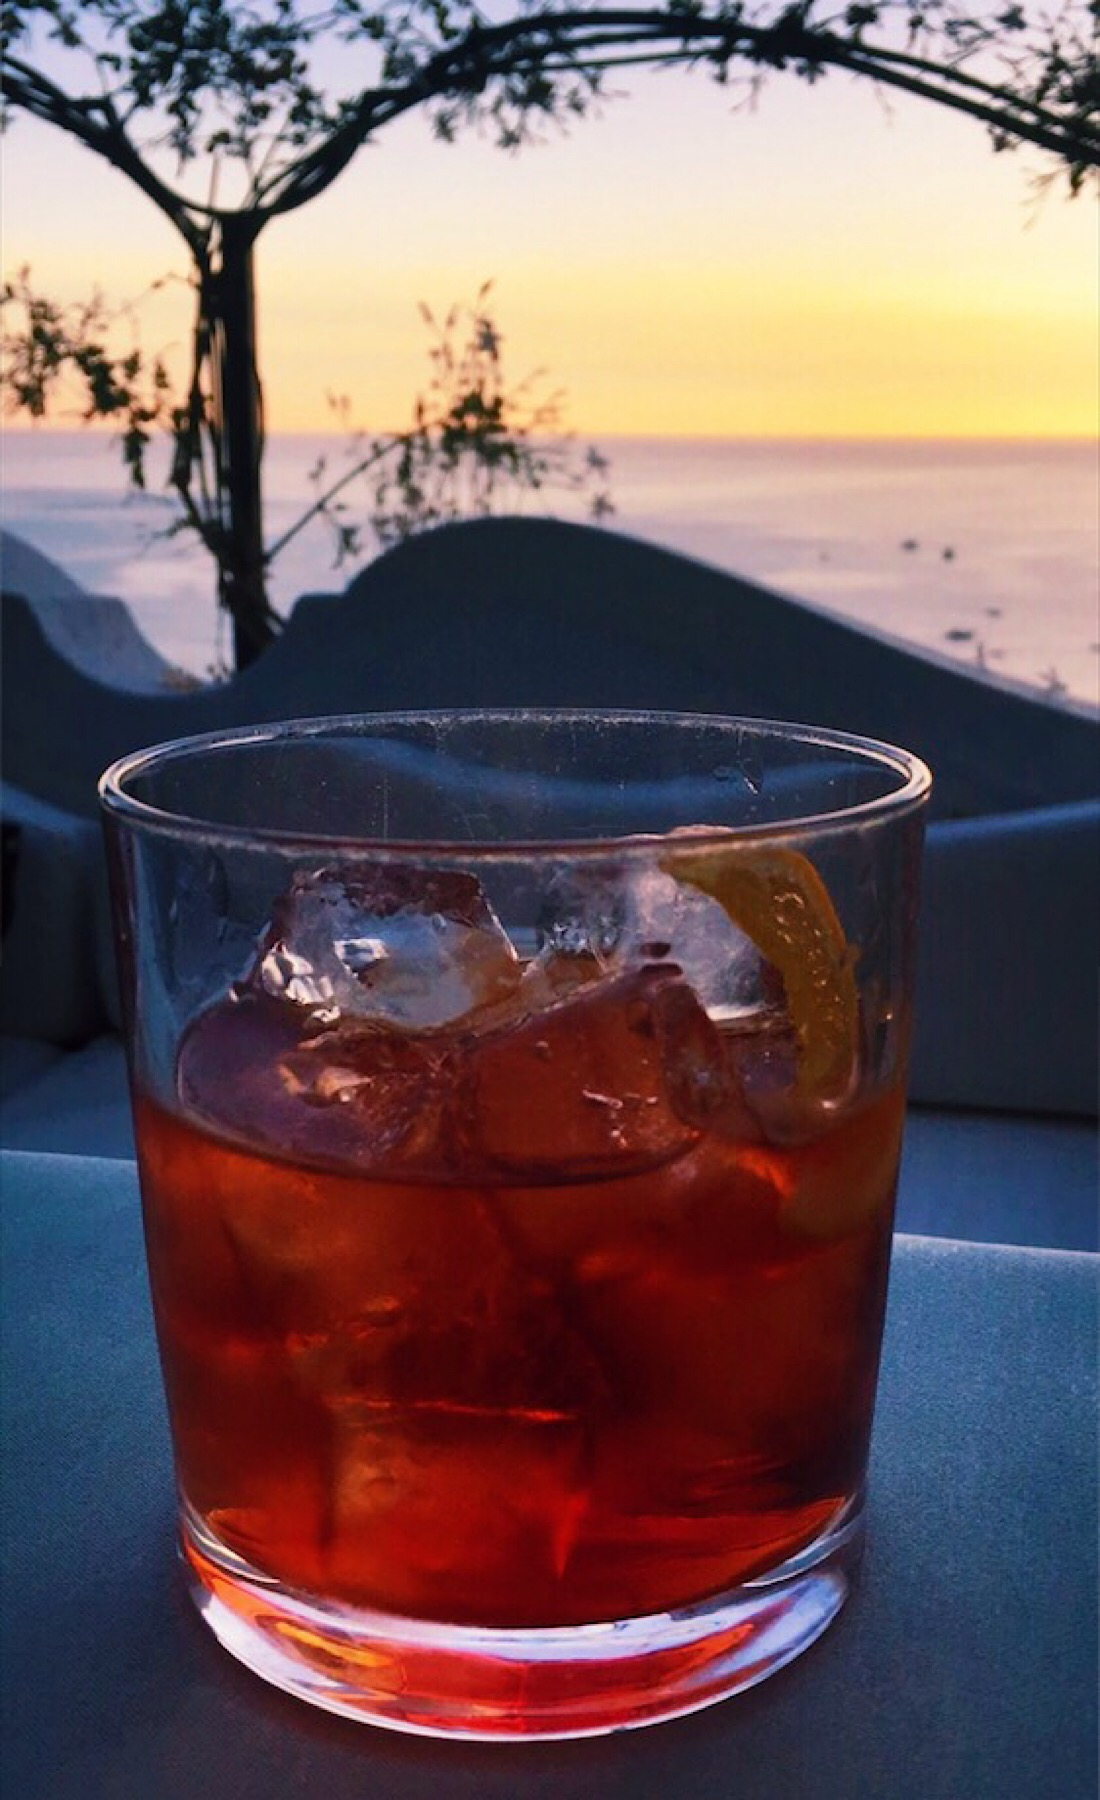 Sunset + Negroni